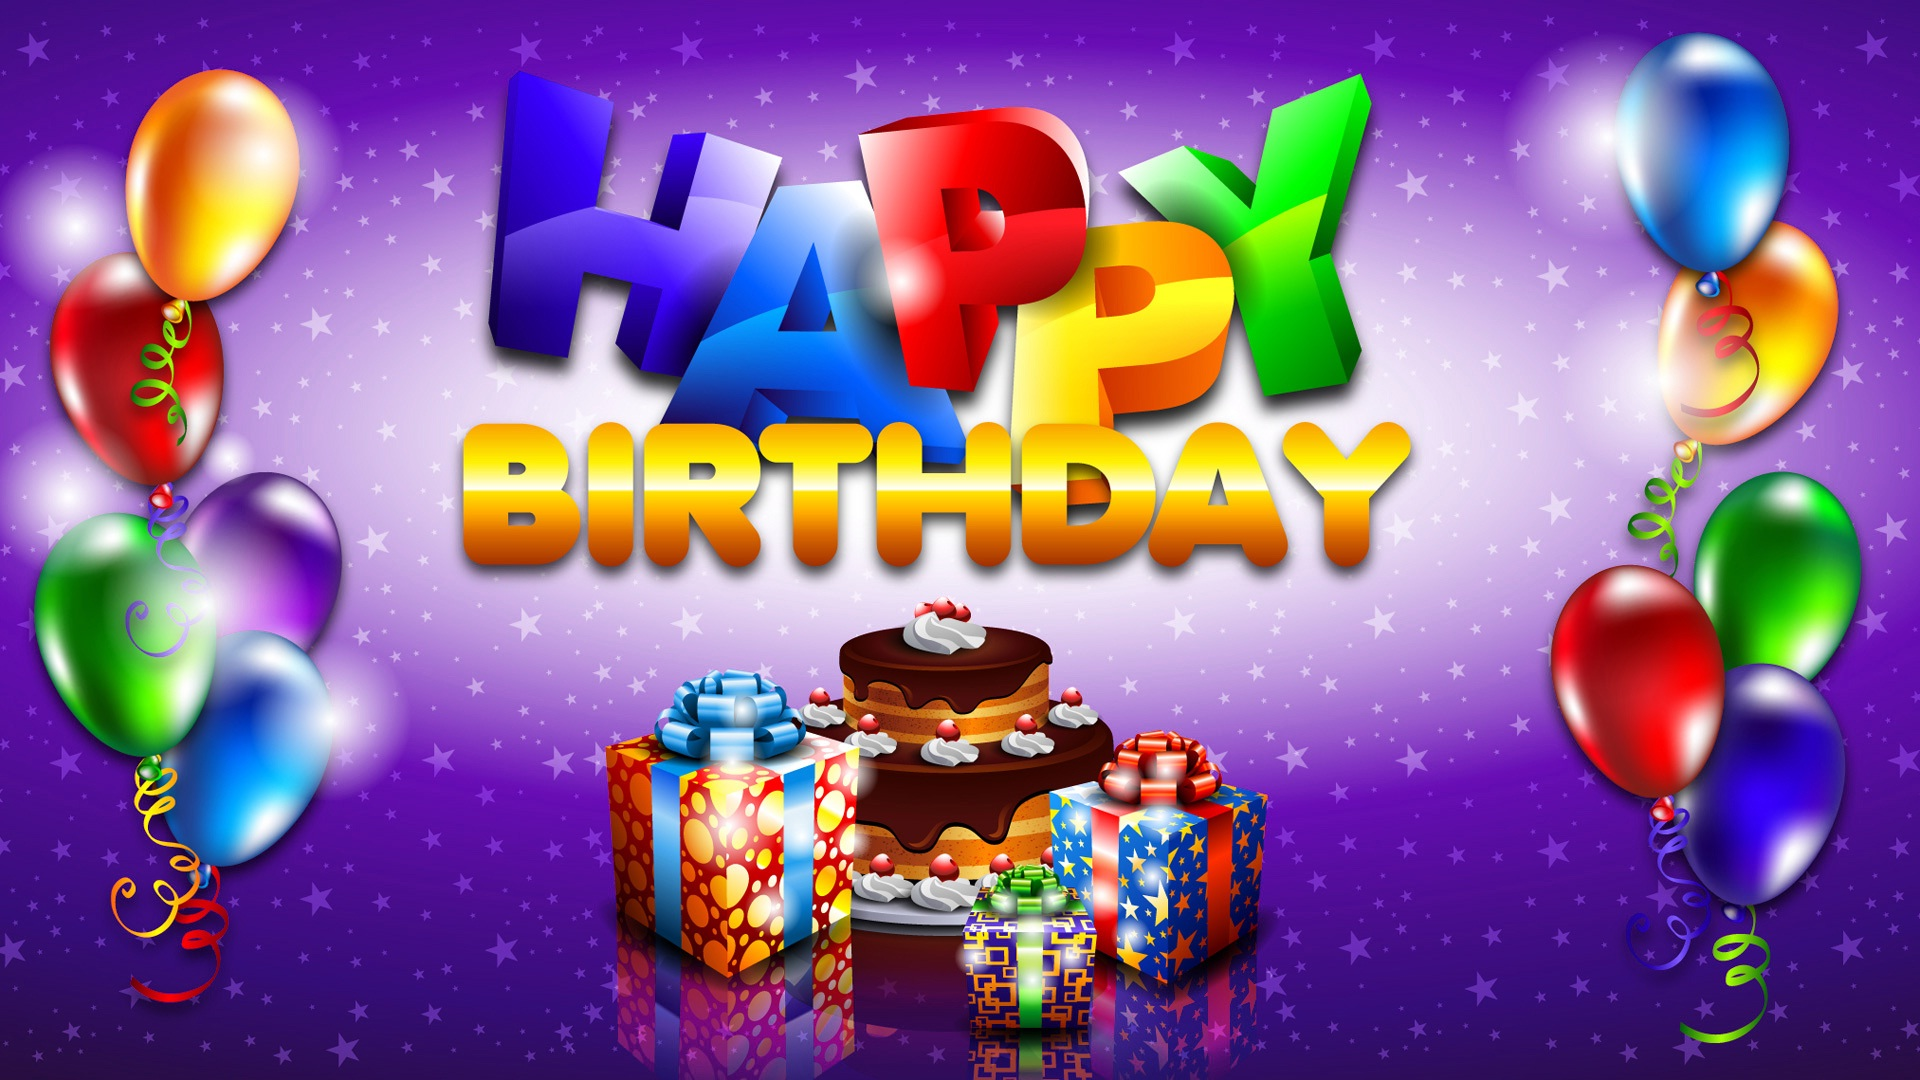 happy birthday to you images hd ; Happy-birthday-to-you-wishes-wallpapers